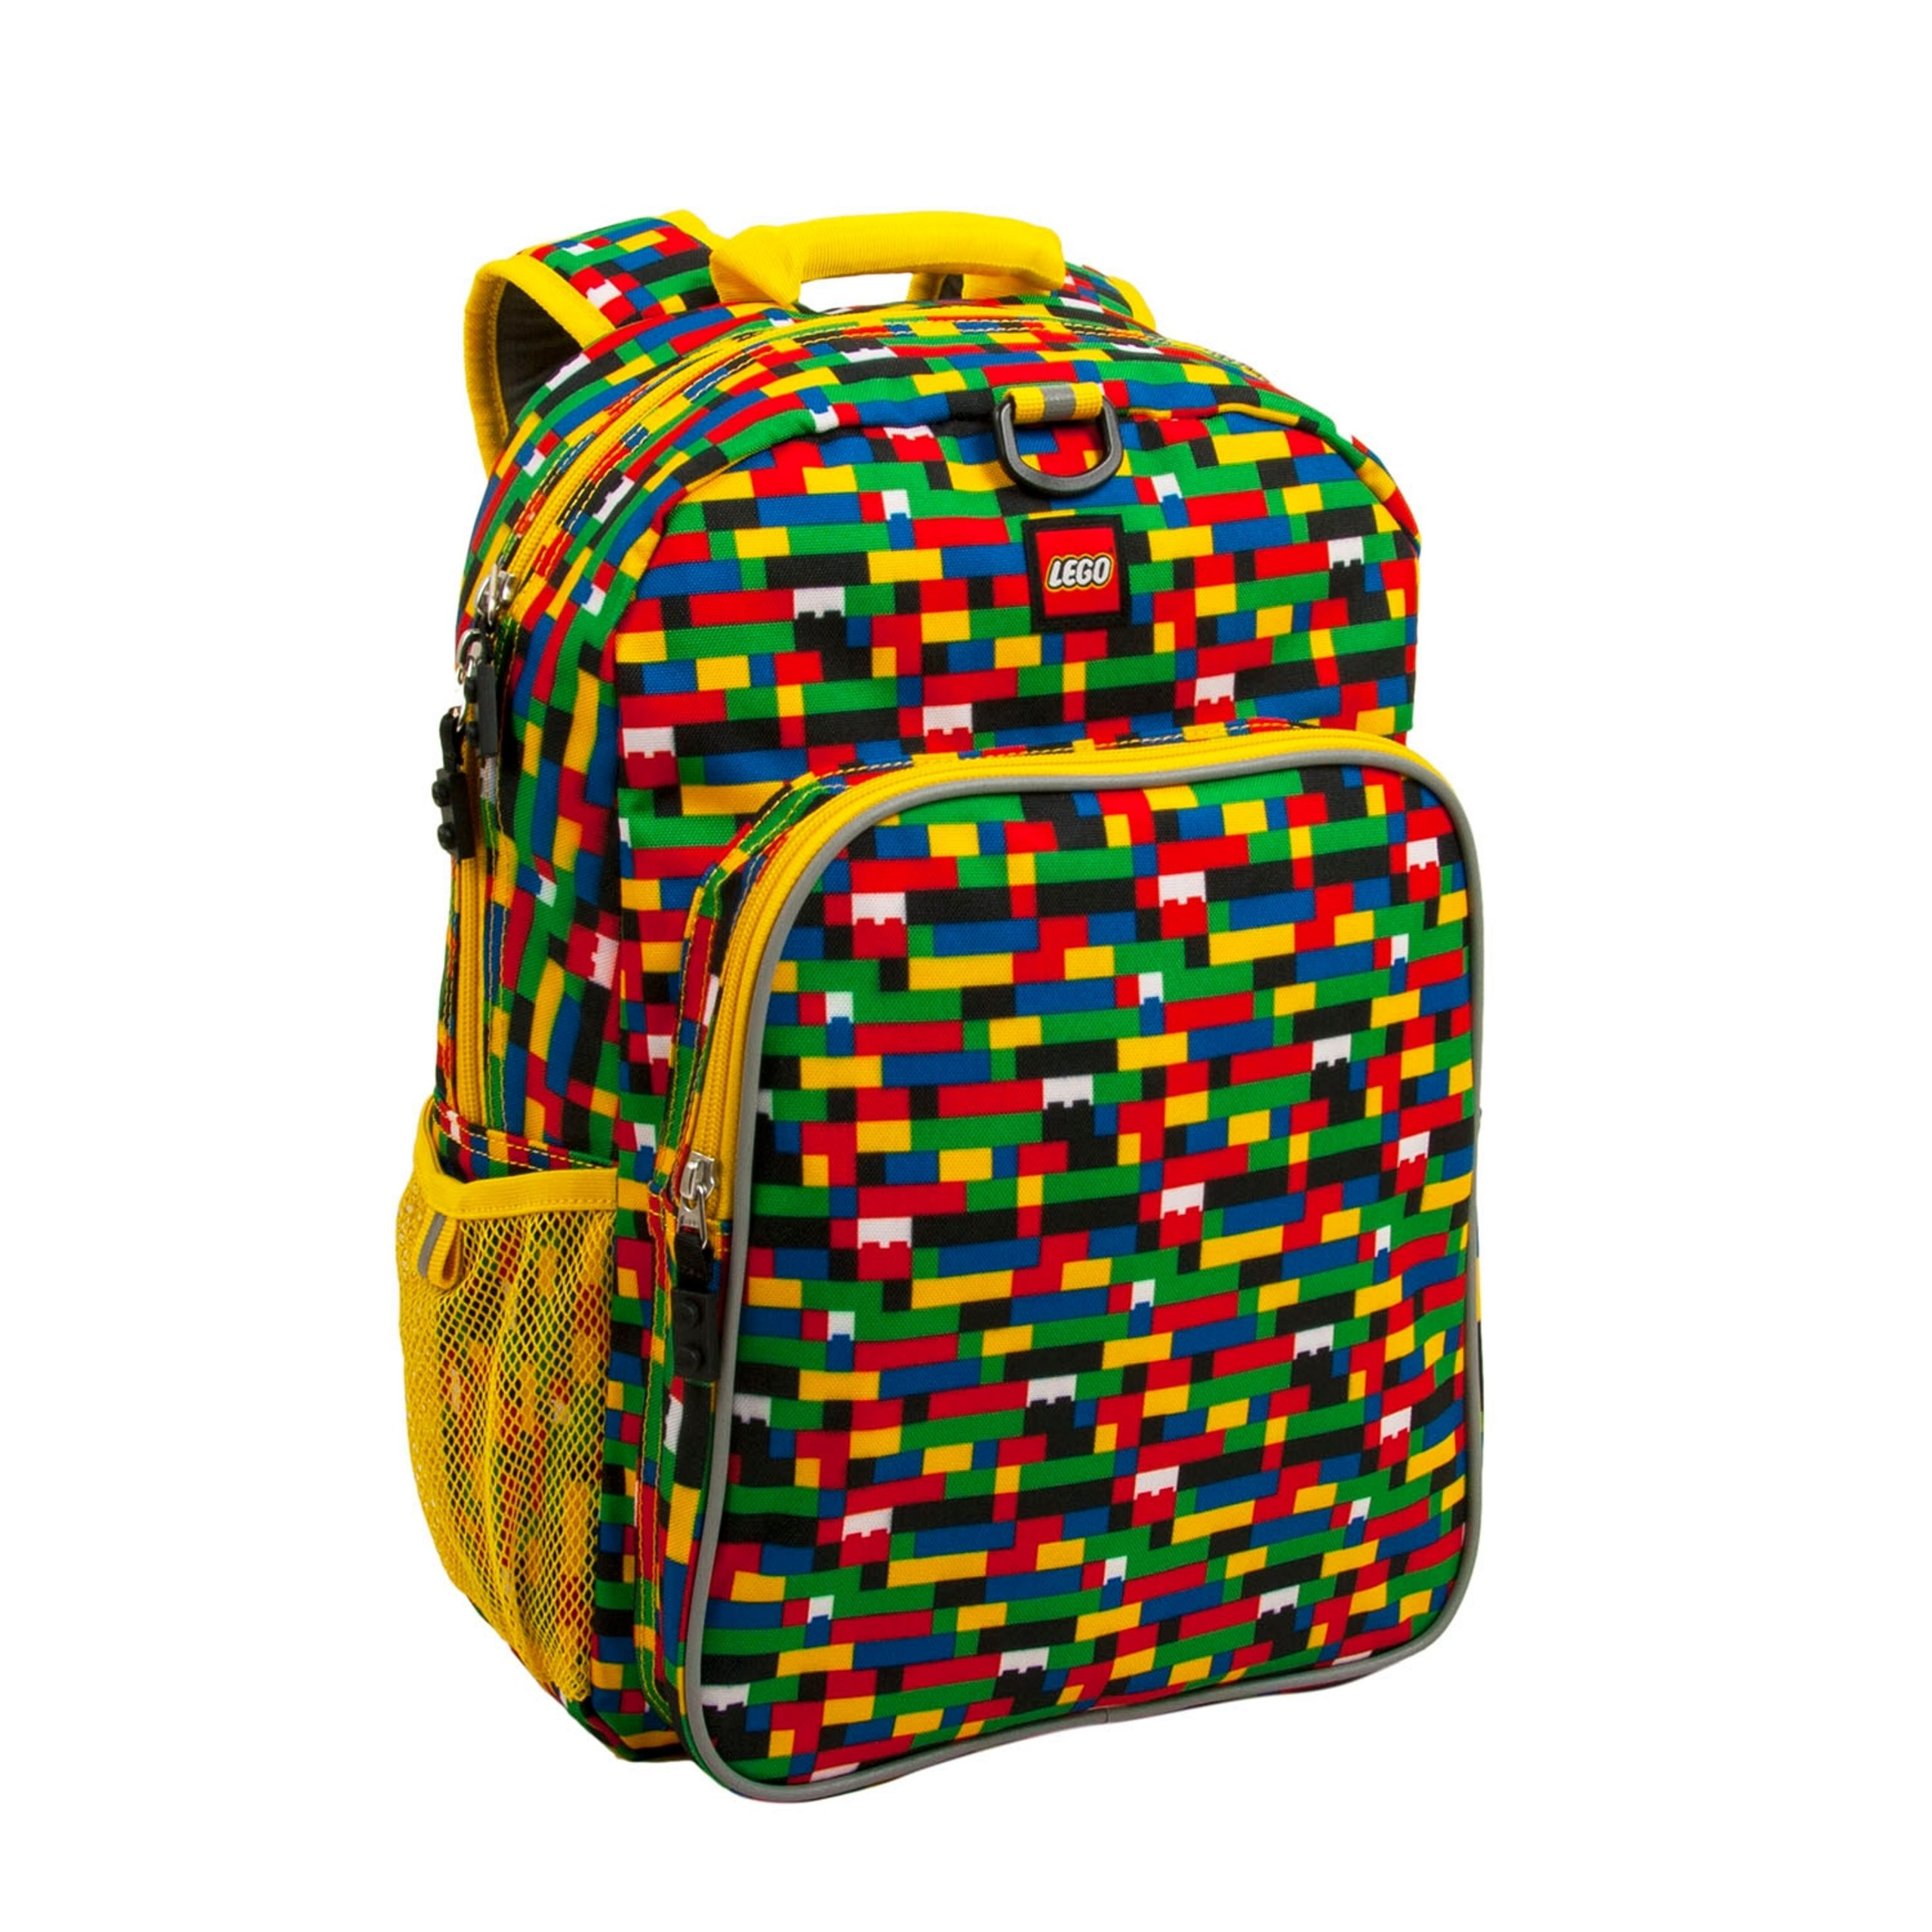 lego 5005356 red blue brick print eco heritage backpack scaled